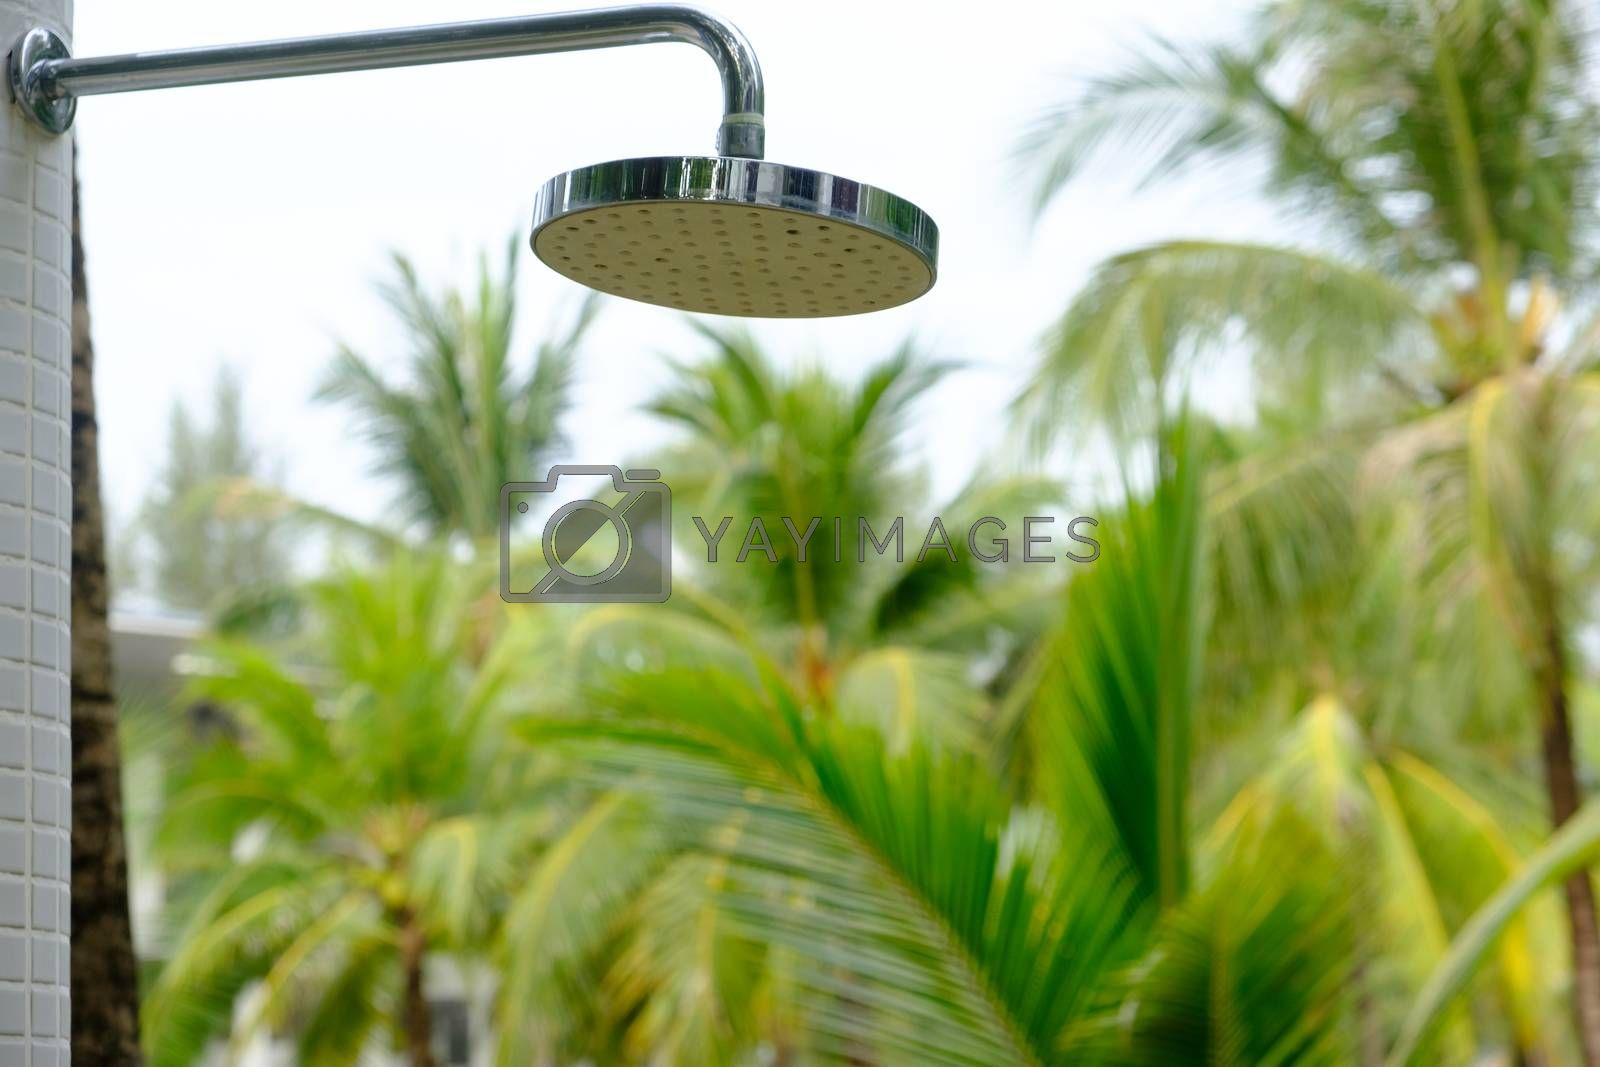 Close-up of Detail of a water shower head on seashore. Outdoor shower palm trees blurry background.